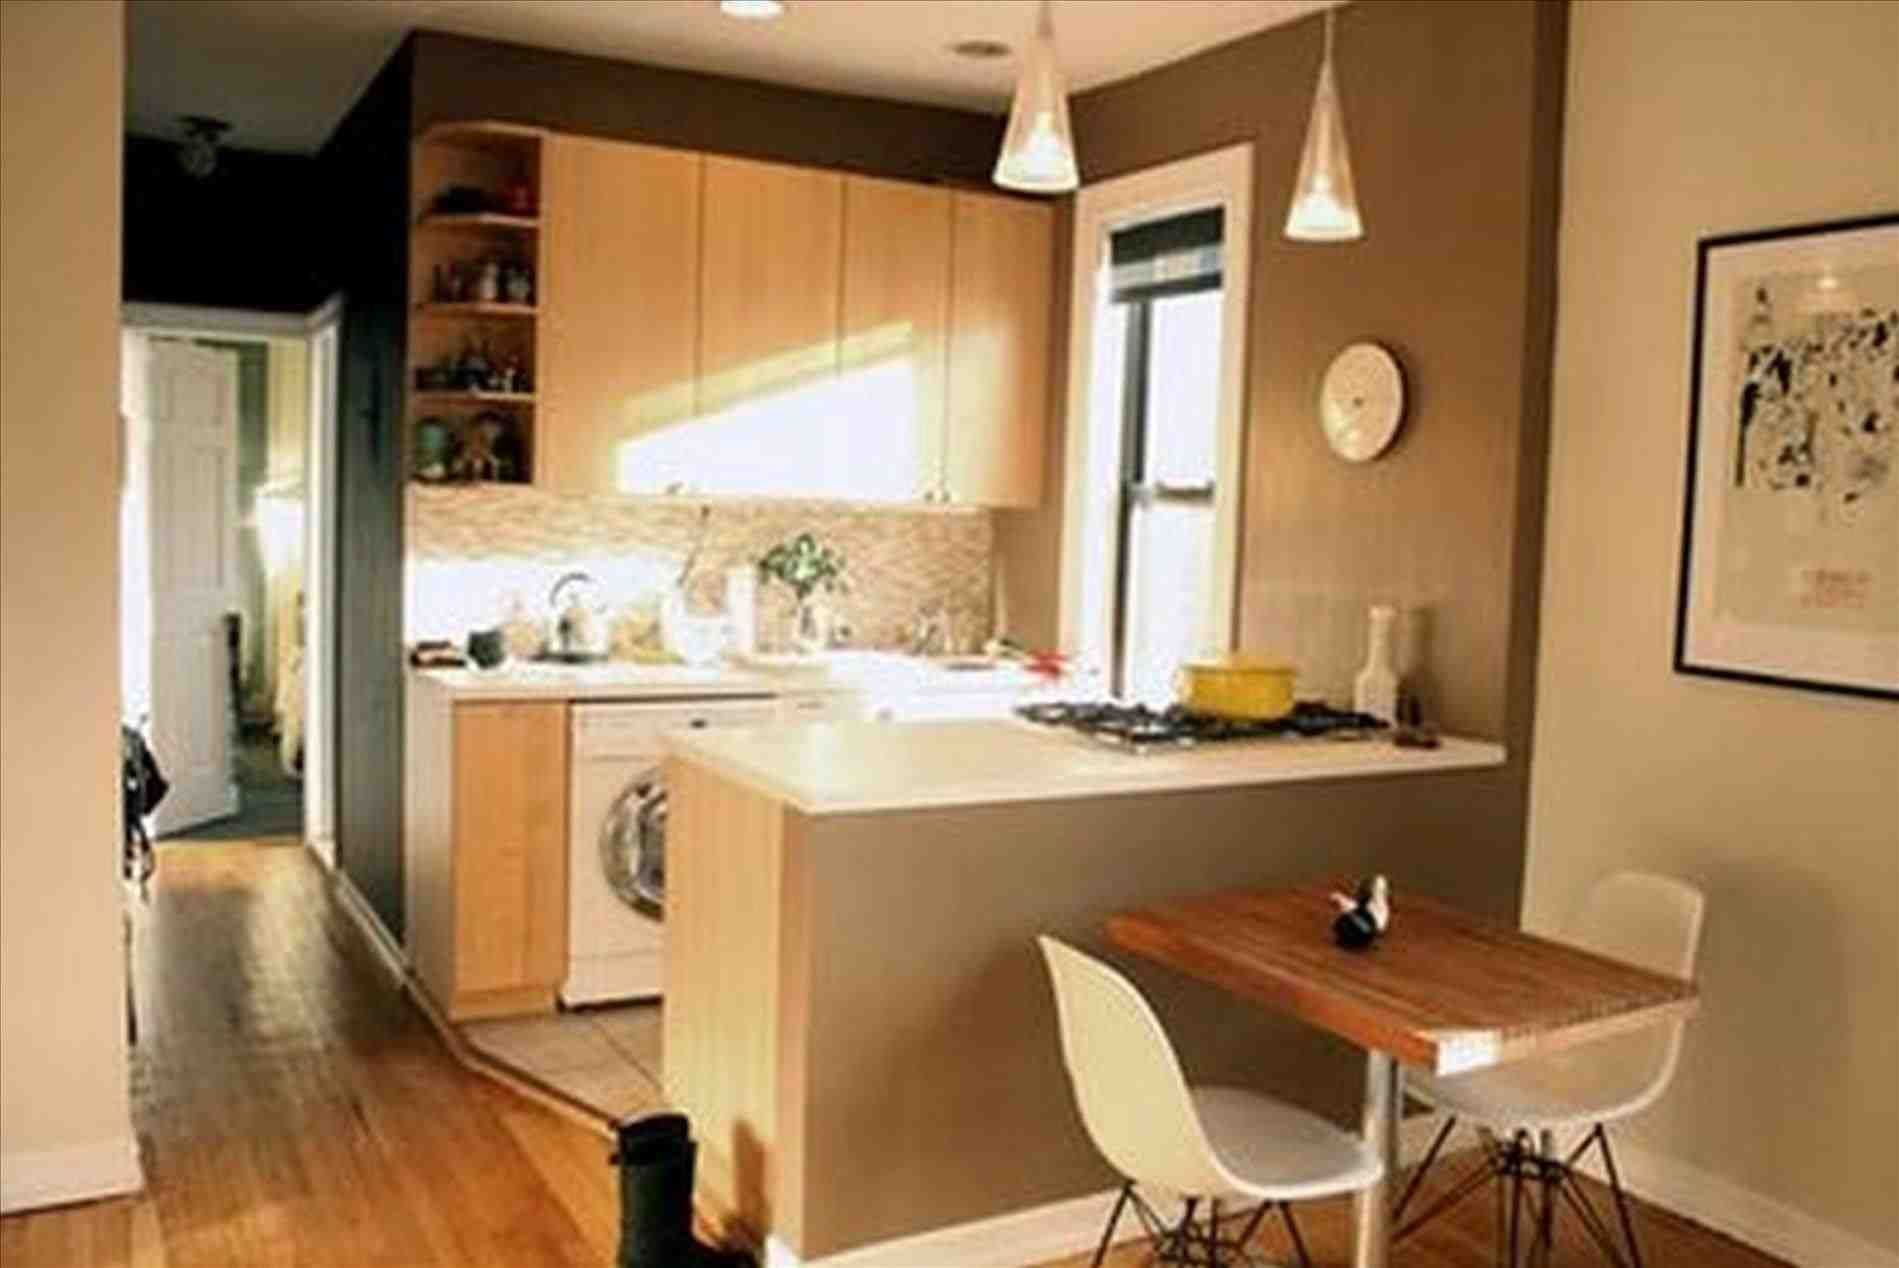 Simple apartment interiors appealing home decorating ideas  decor for apartments wonderful bedroom design with also rh pinterest